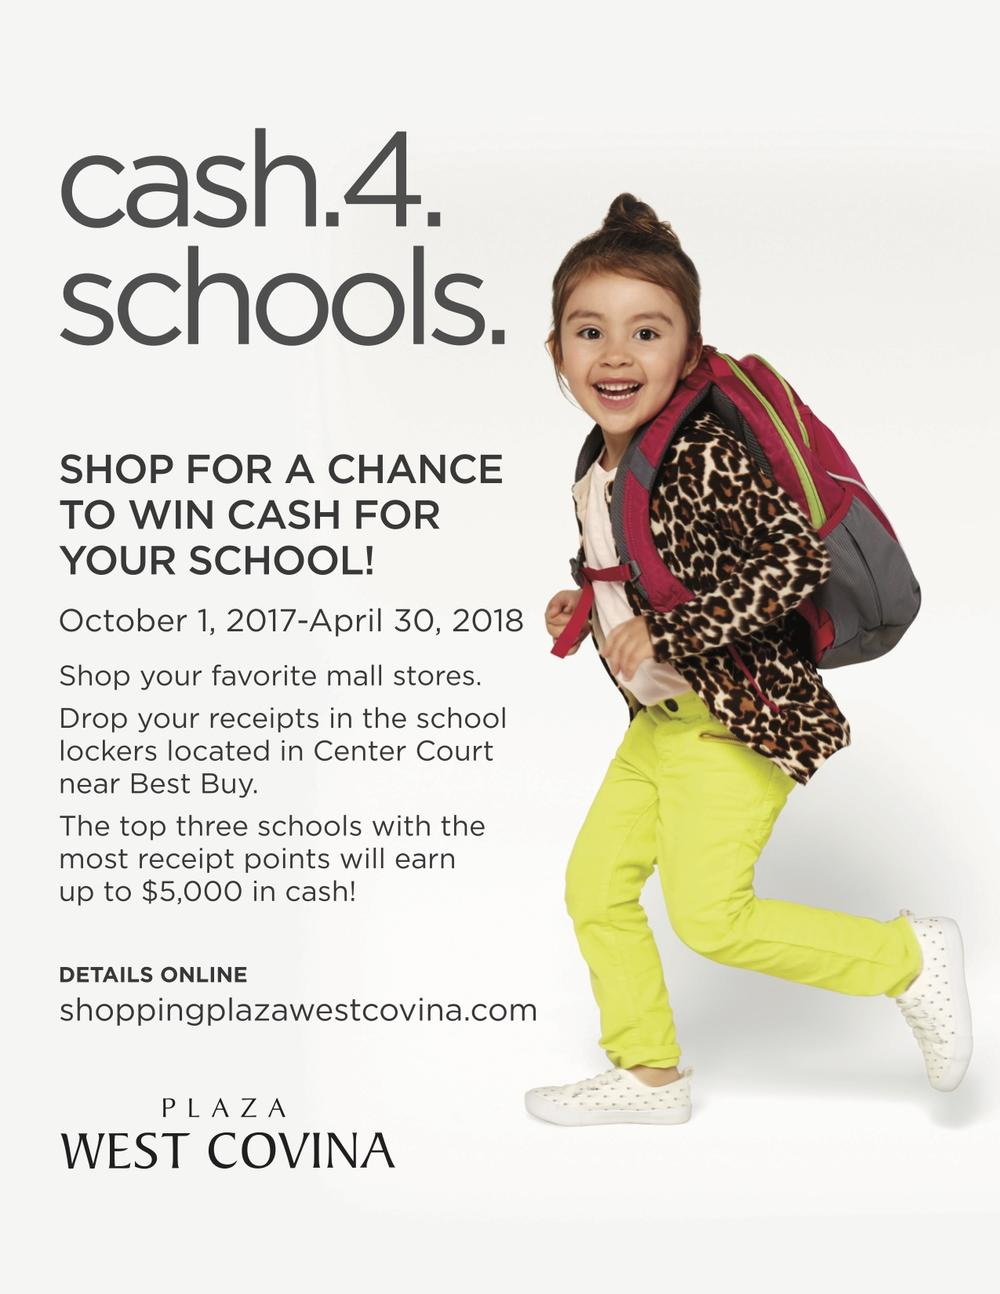 Chance to win cash for our school